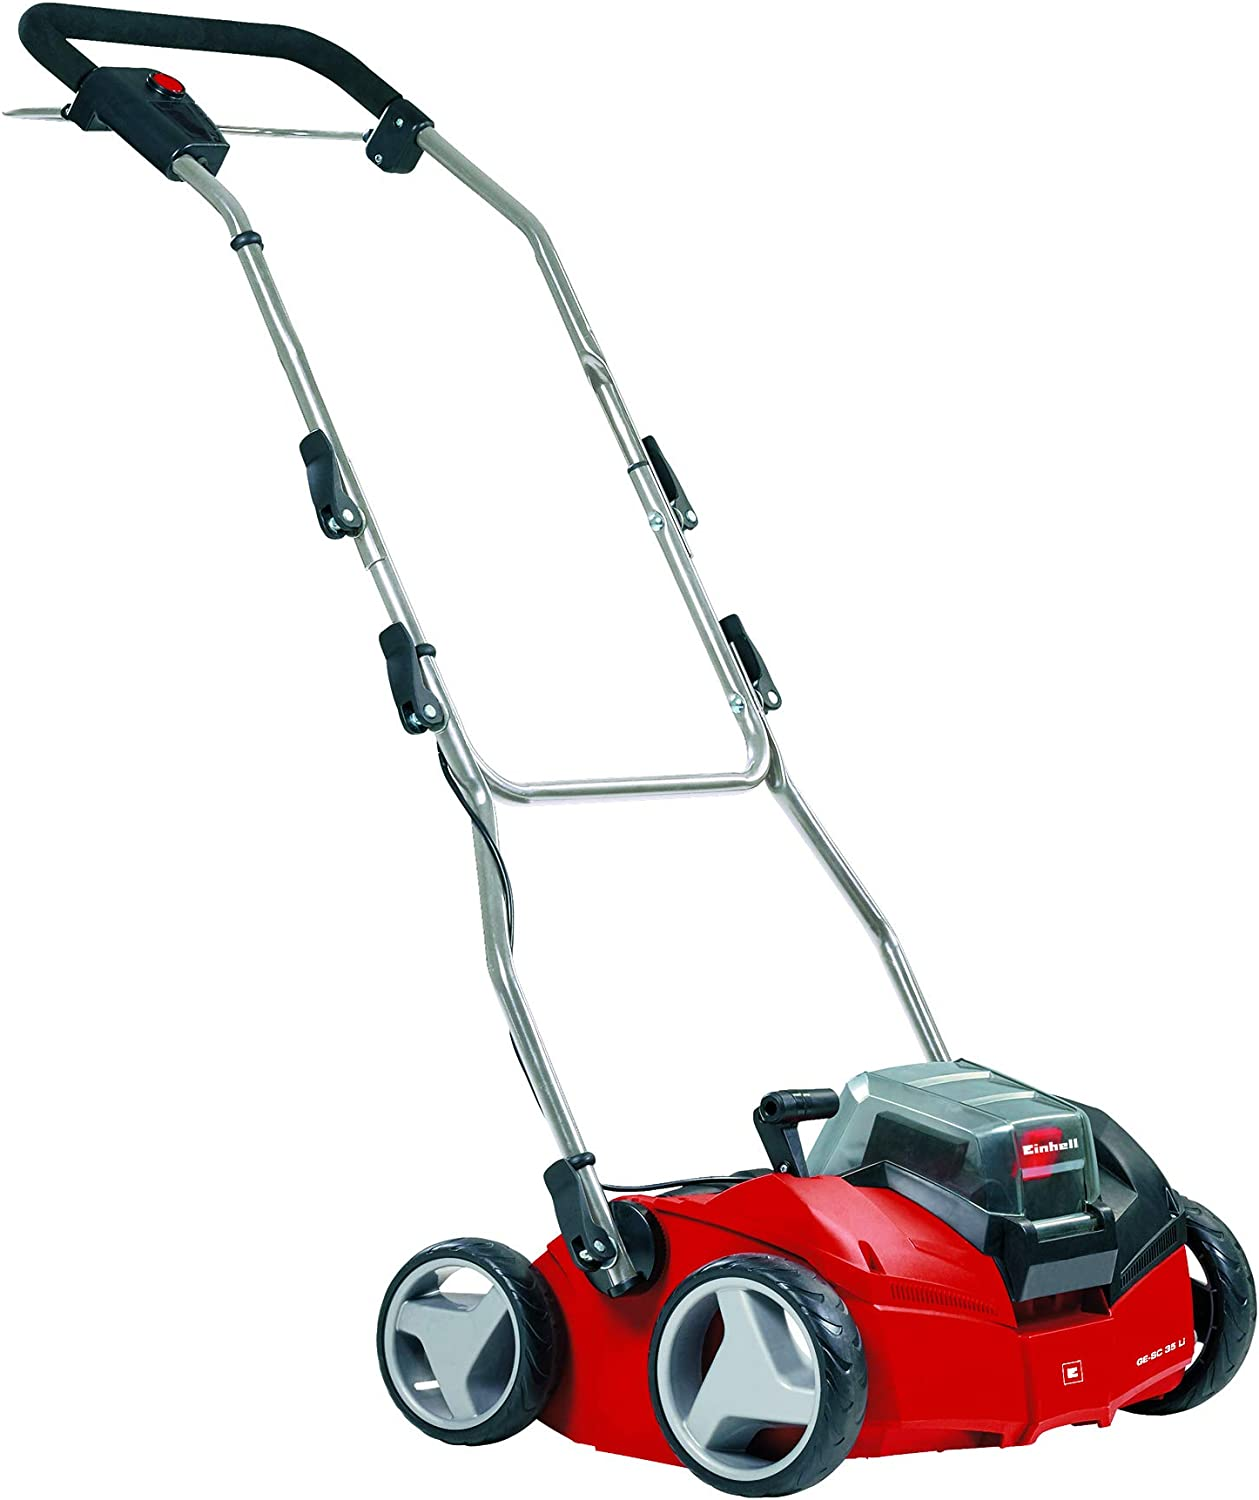 Red Einhell GE-SA 1335 P Petrol Scarifier//Aerator with 35 cm Working Width